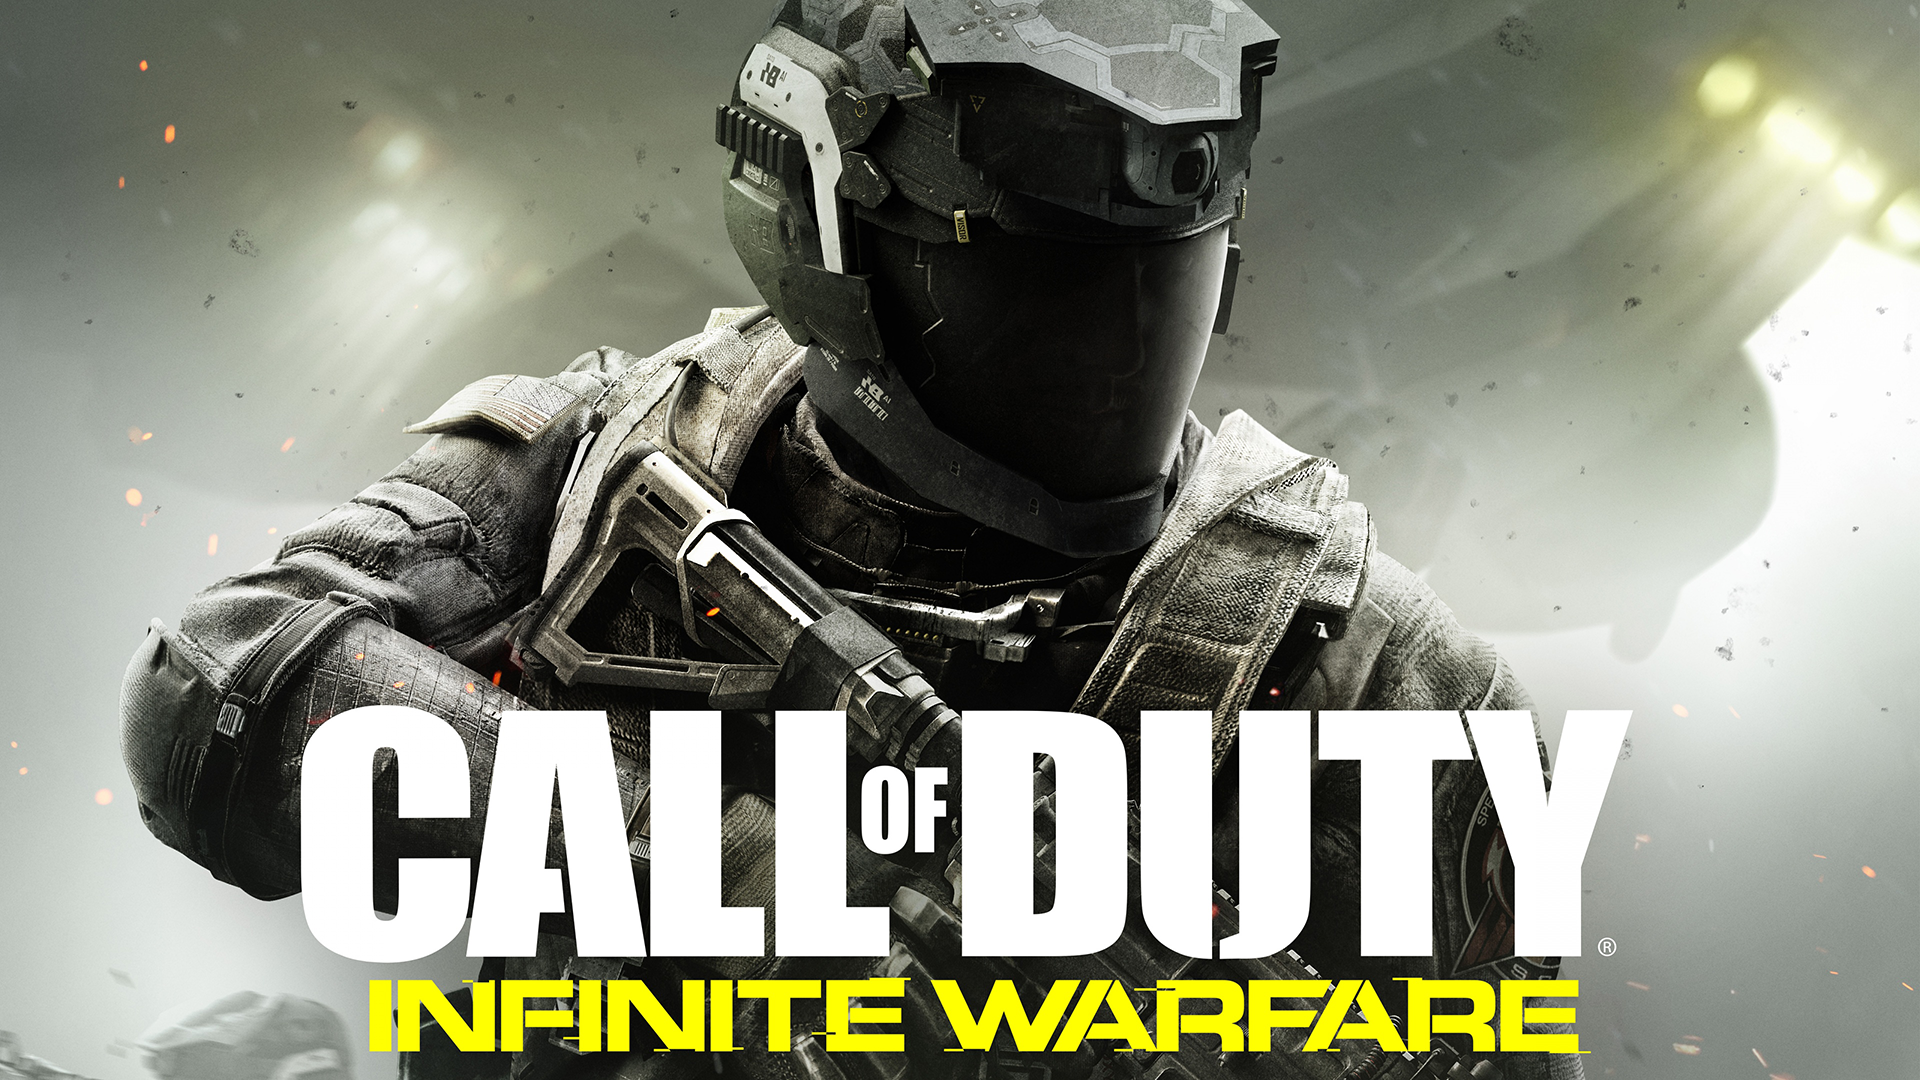 call_of_duty_infinite_warfare_game-3840x2160.png